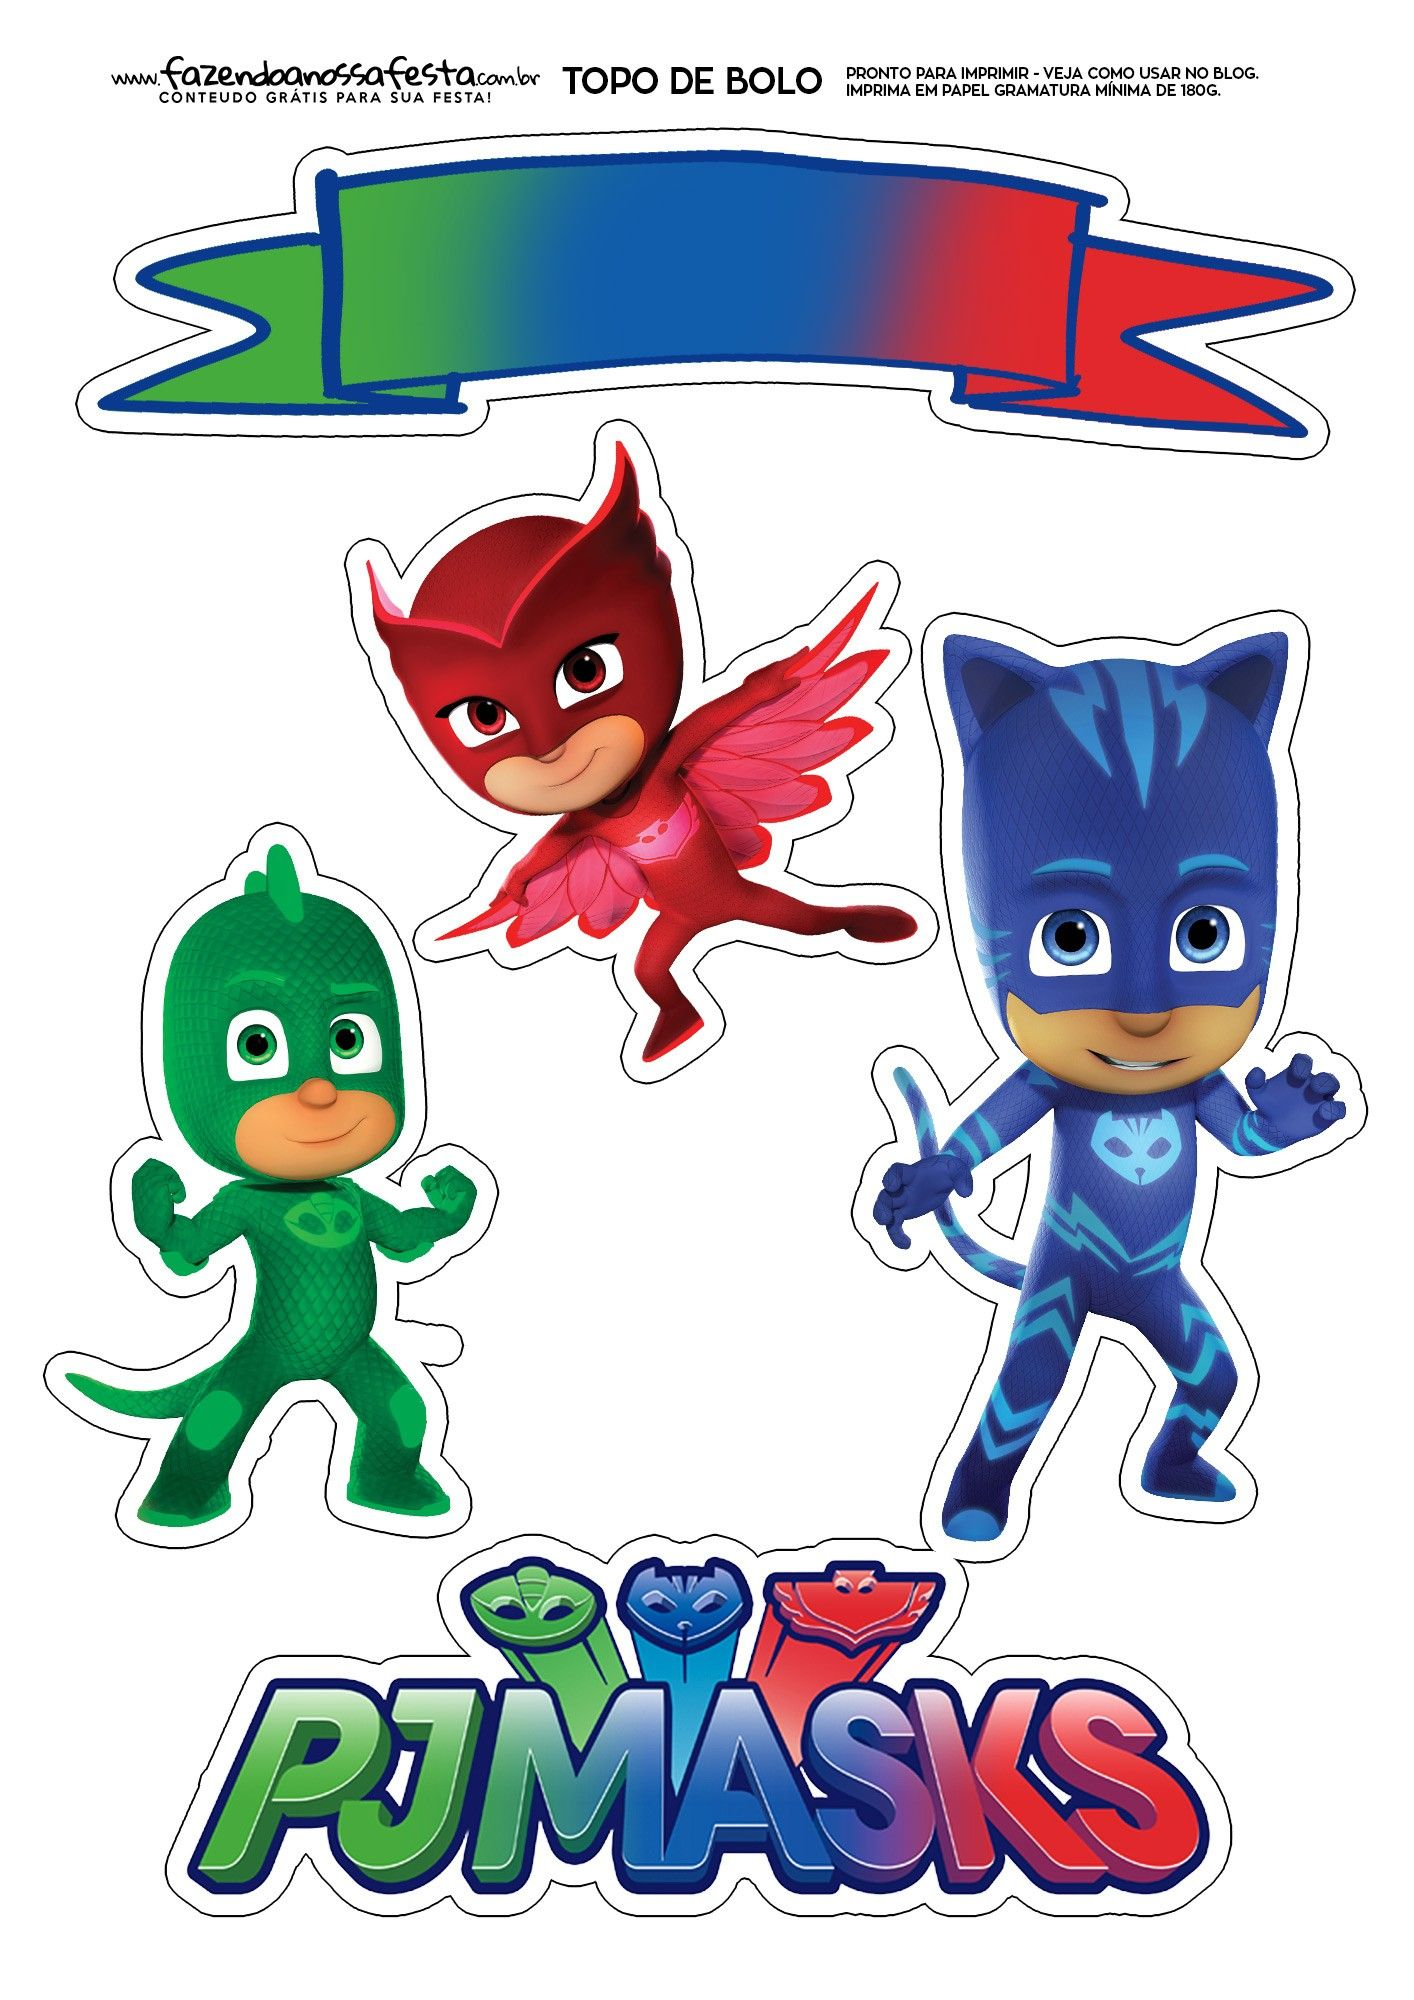 Pin by Sheena Reed on Pj masks birthday party (With images ...